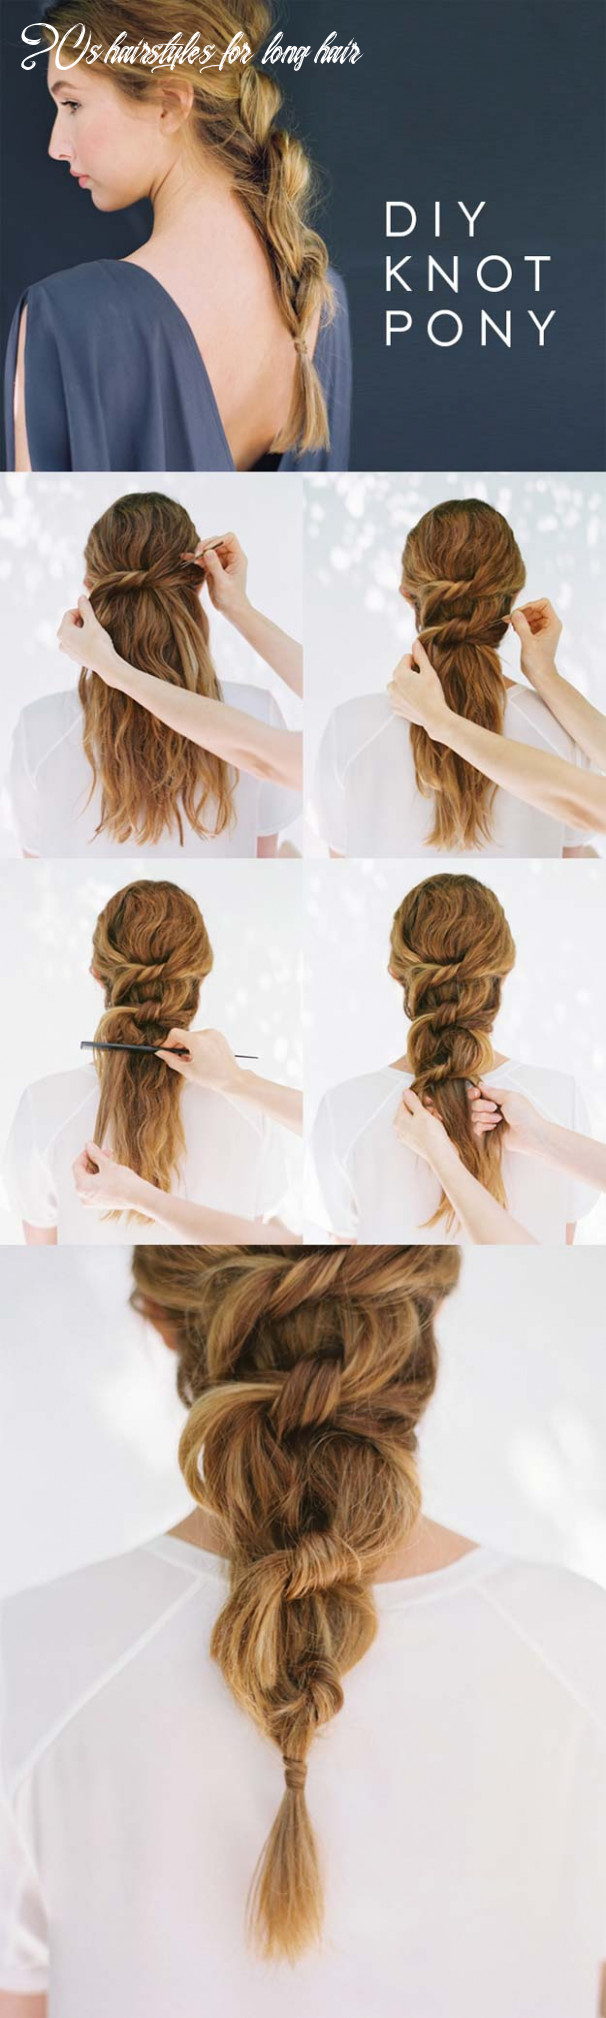 9s Hairstyles For Long Hair   Find your Perfect Hair Style